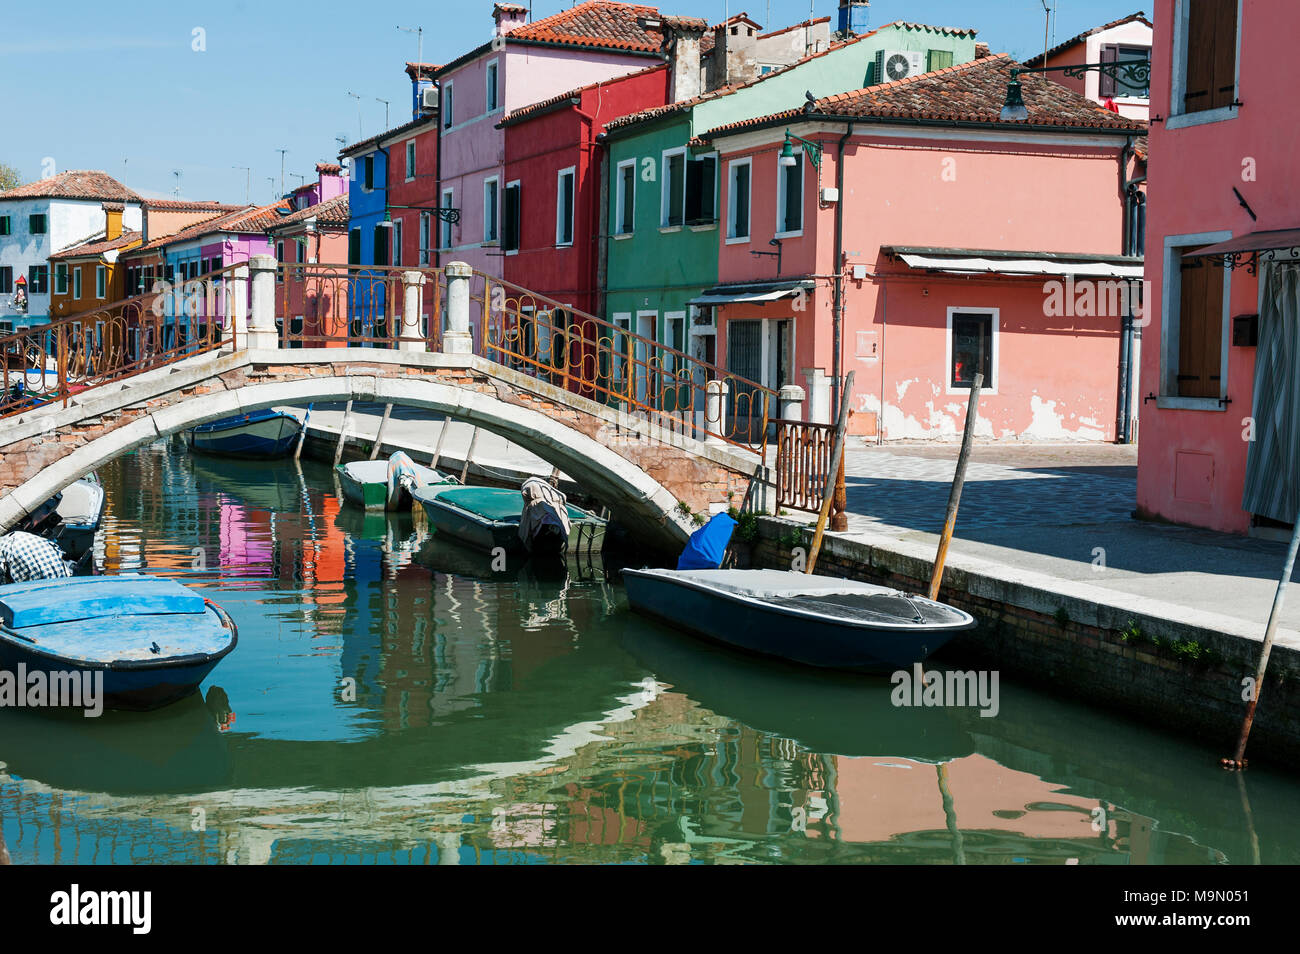 Burano island, Venice, Italy - beautiful view of canal, colorful houses, boats and a bridge - Stock Image